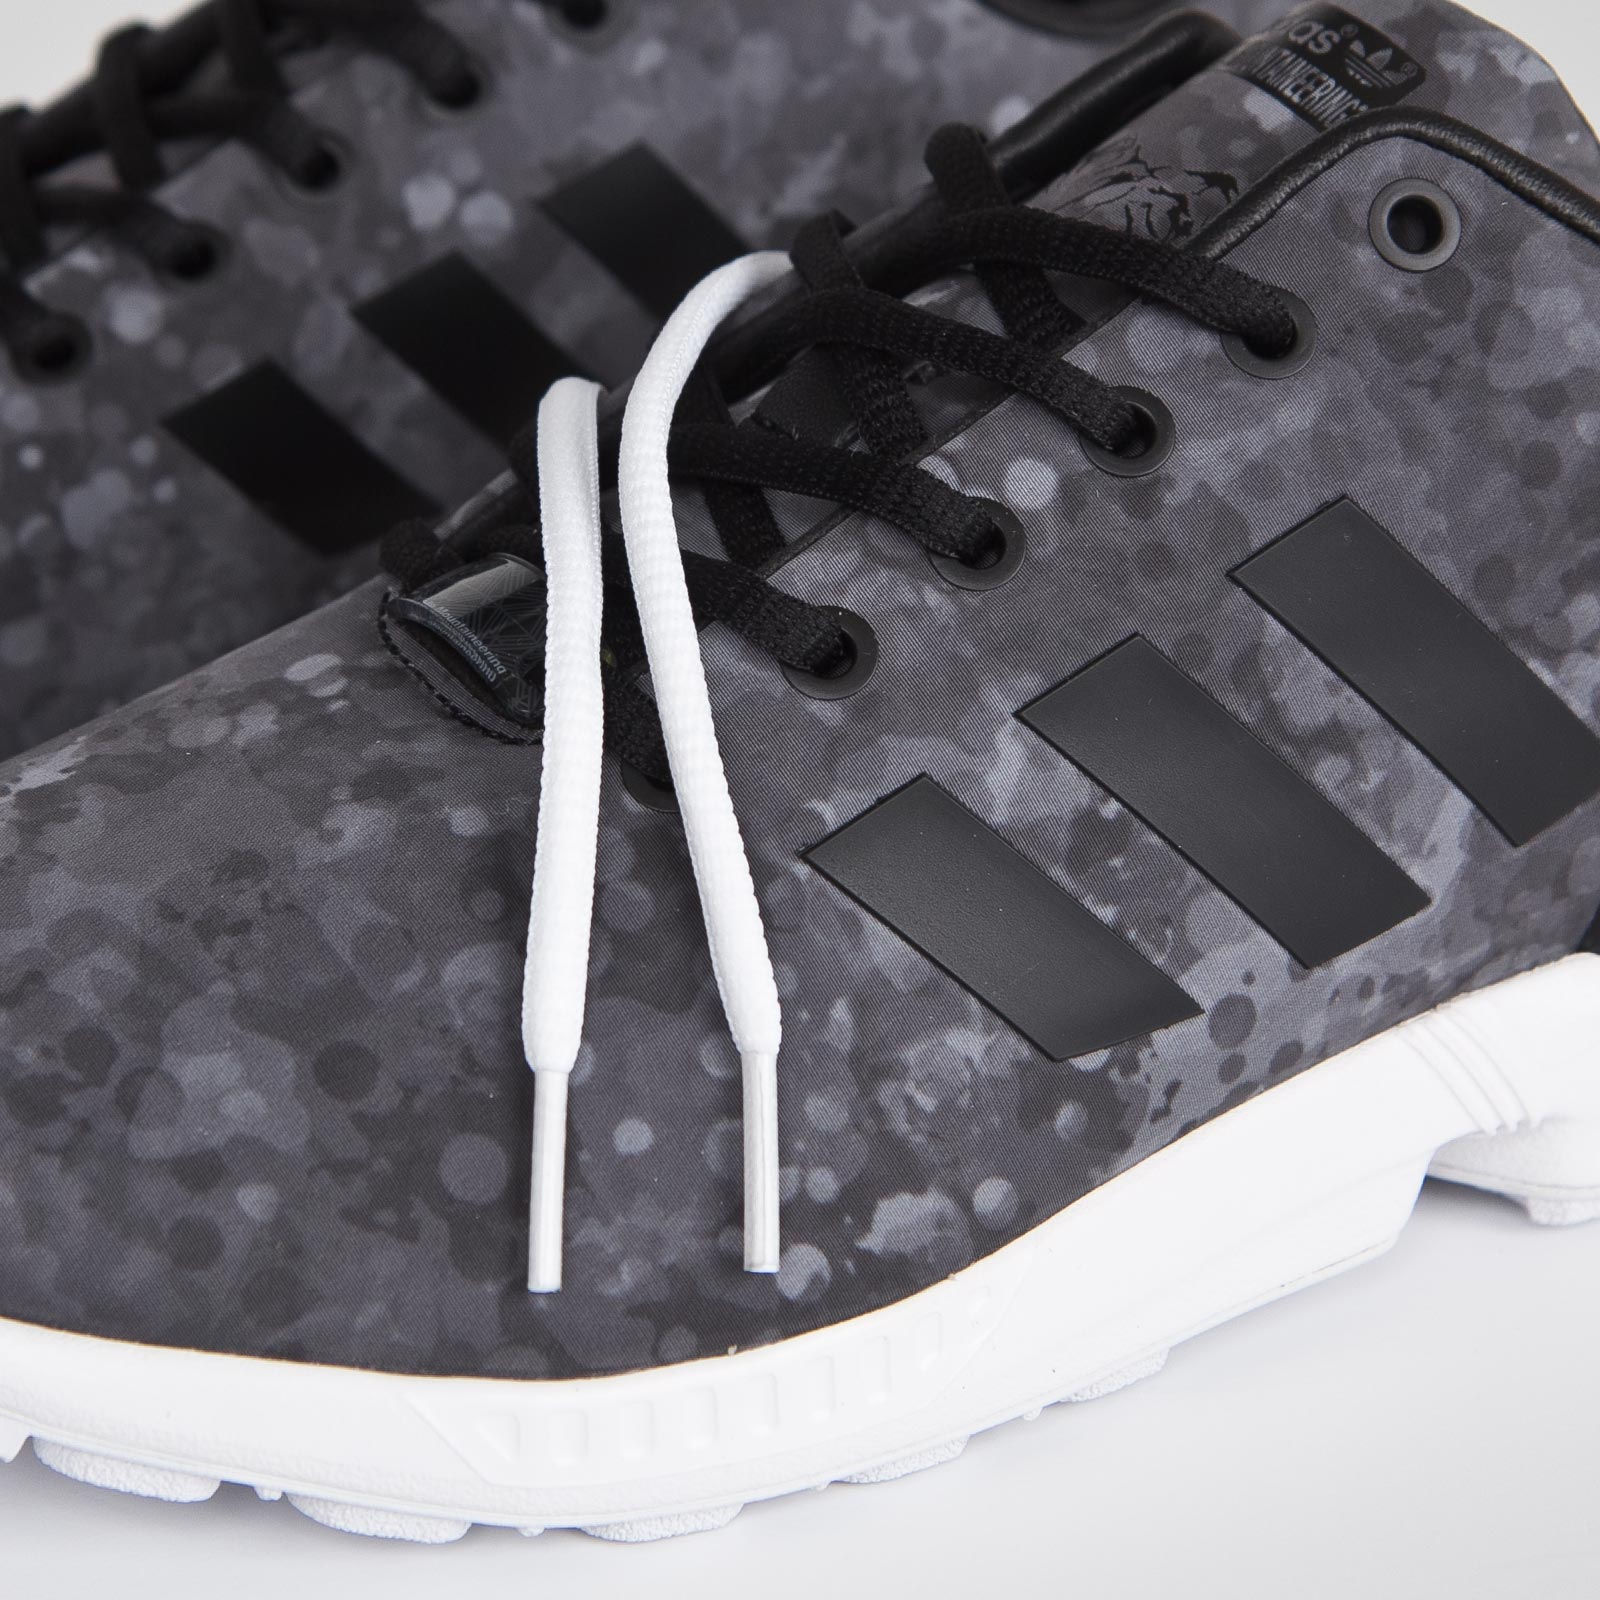 4bc9f5579bcd adidas ZX Flux White Mountaineering - Af6228 - Sneakersnstuff ...